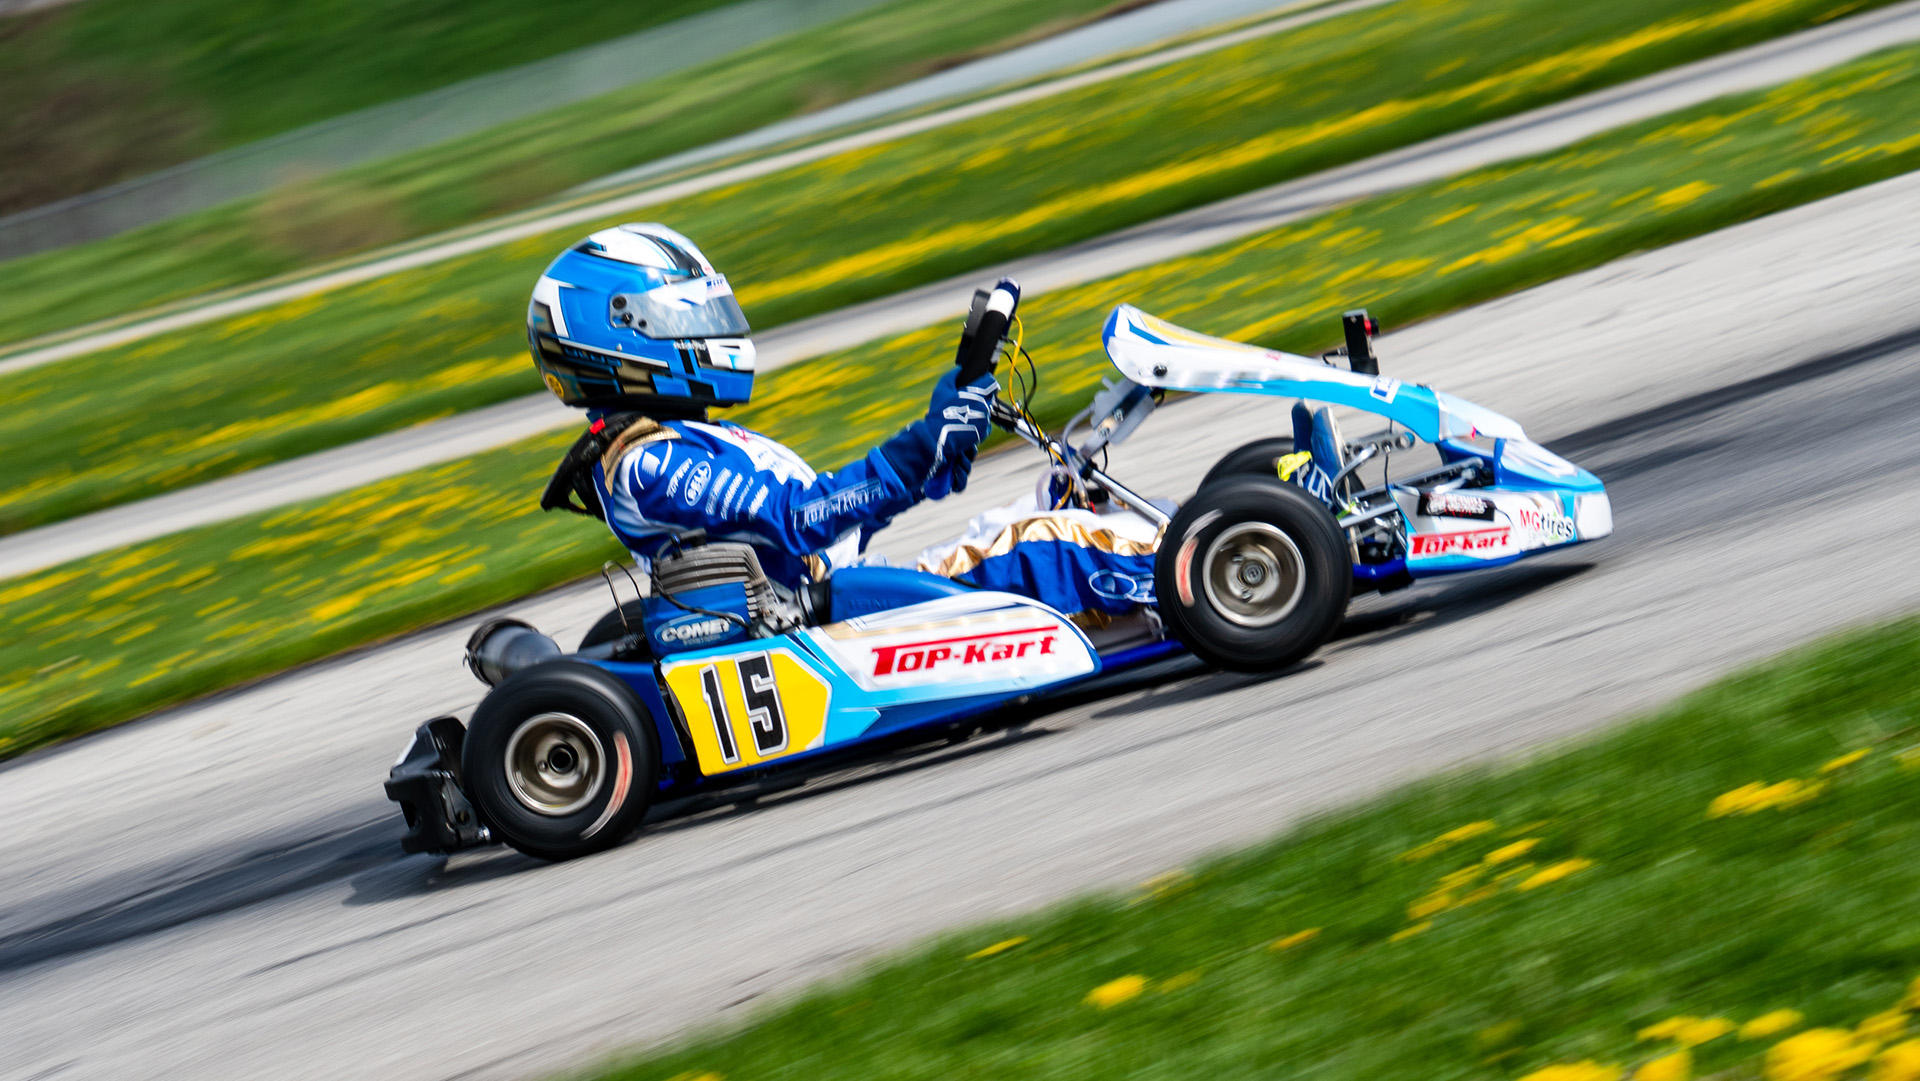 TOP KART USA SCORES VICTORIES AND MULTIPLE PODIUMS FOR ROUND ONE OF ROUTE 66